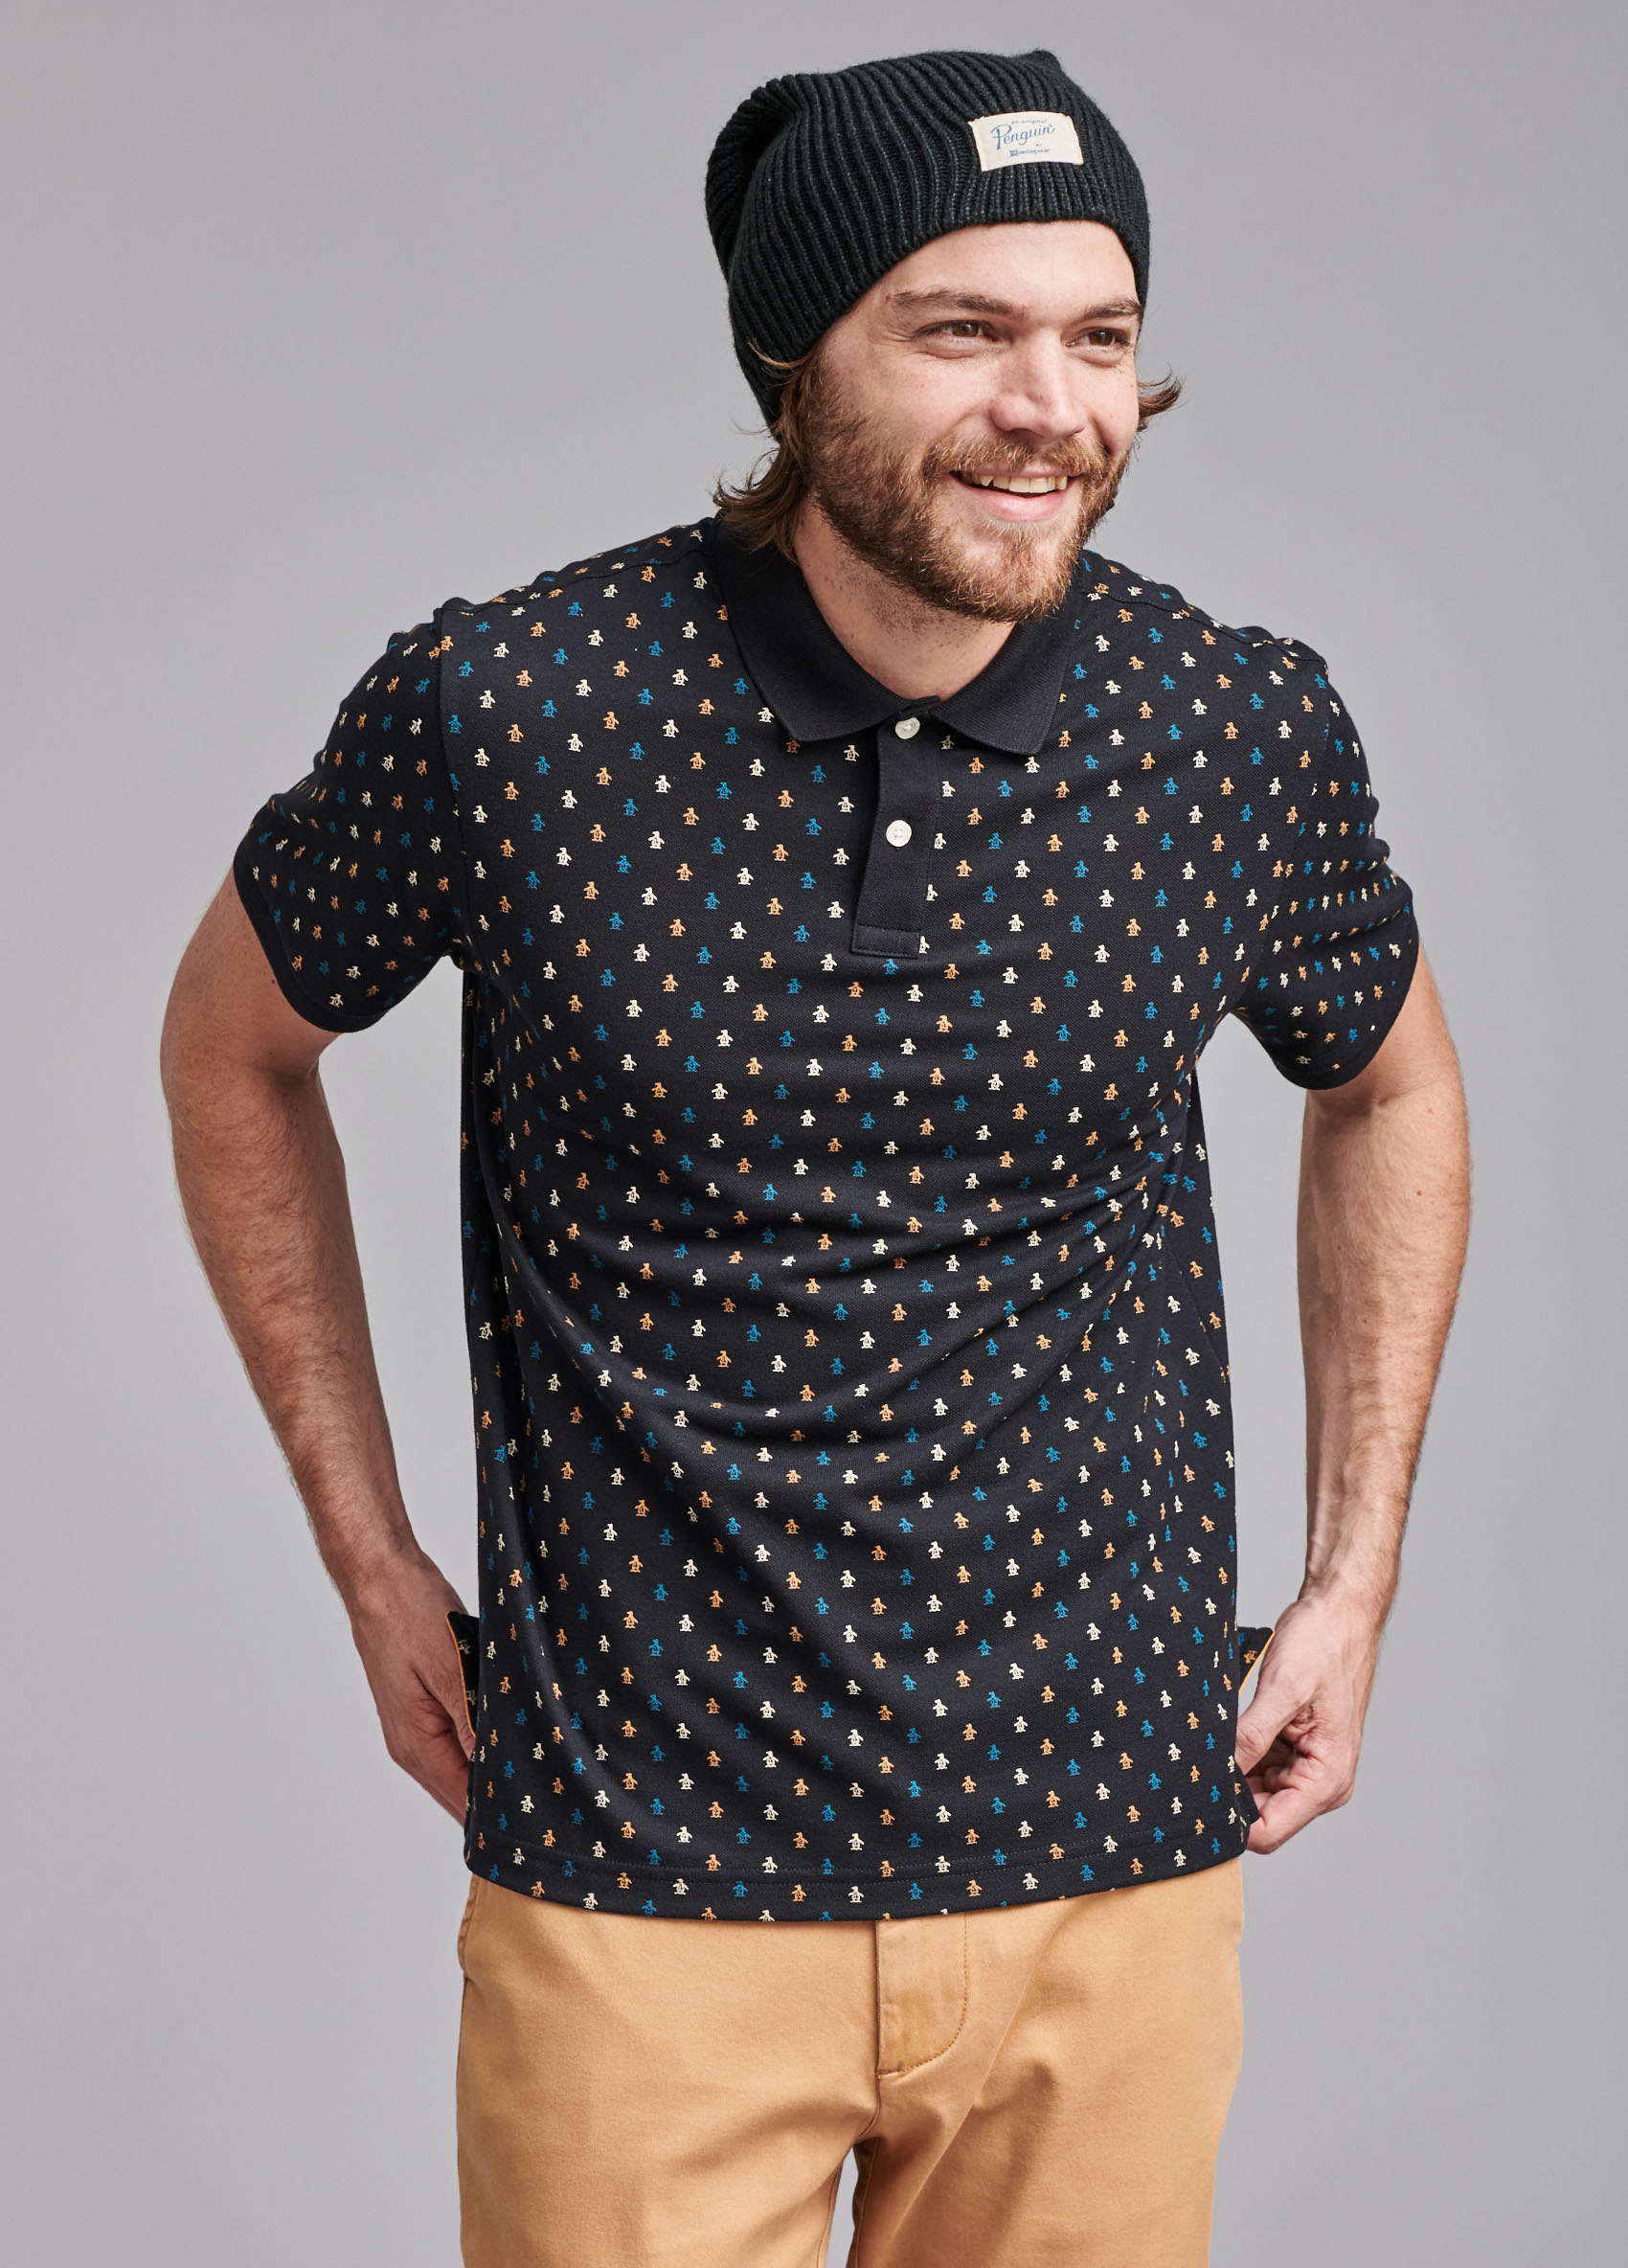 penguin_s/s-re-pete-multicolor-daddy-polo_52-18-2019__picture-9132